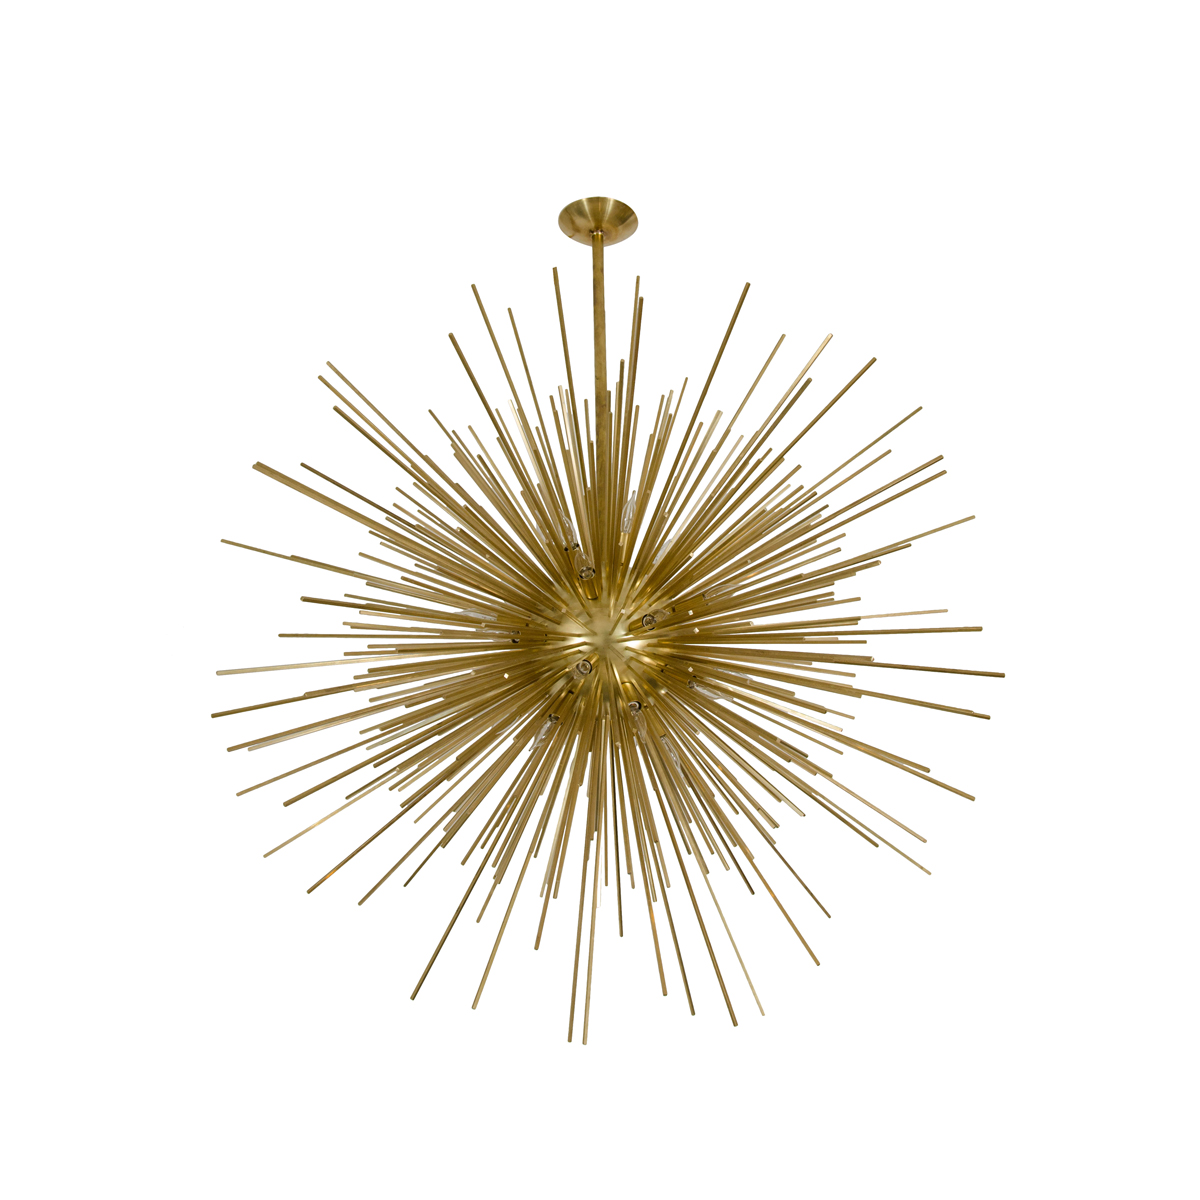 Brass Sputnik Chandelier: Monumental brass sputnik chandelier | Chandeliers & Pendants | John  Salibello,Lighting